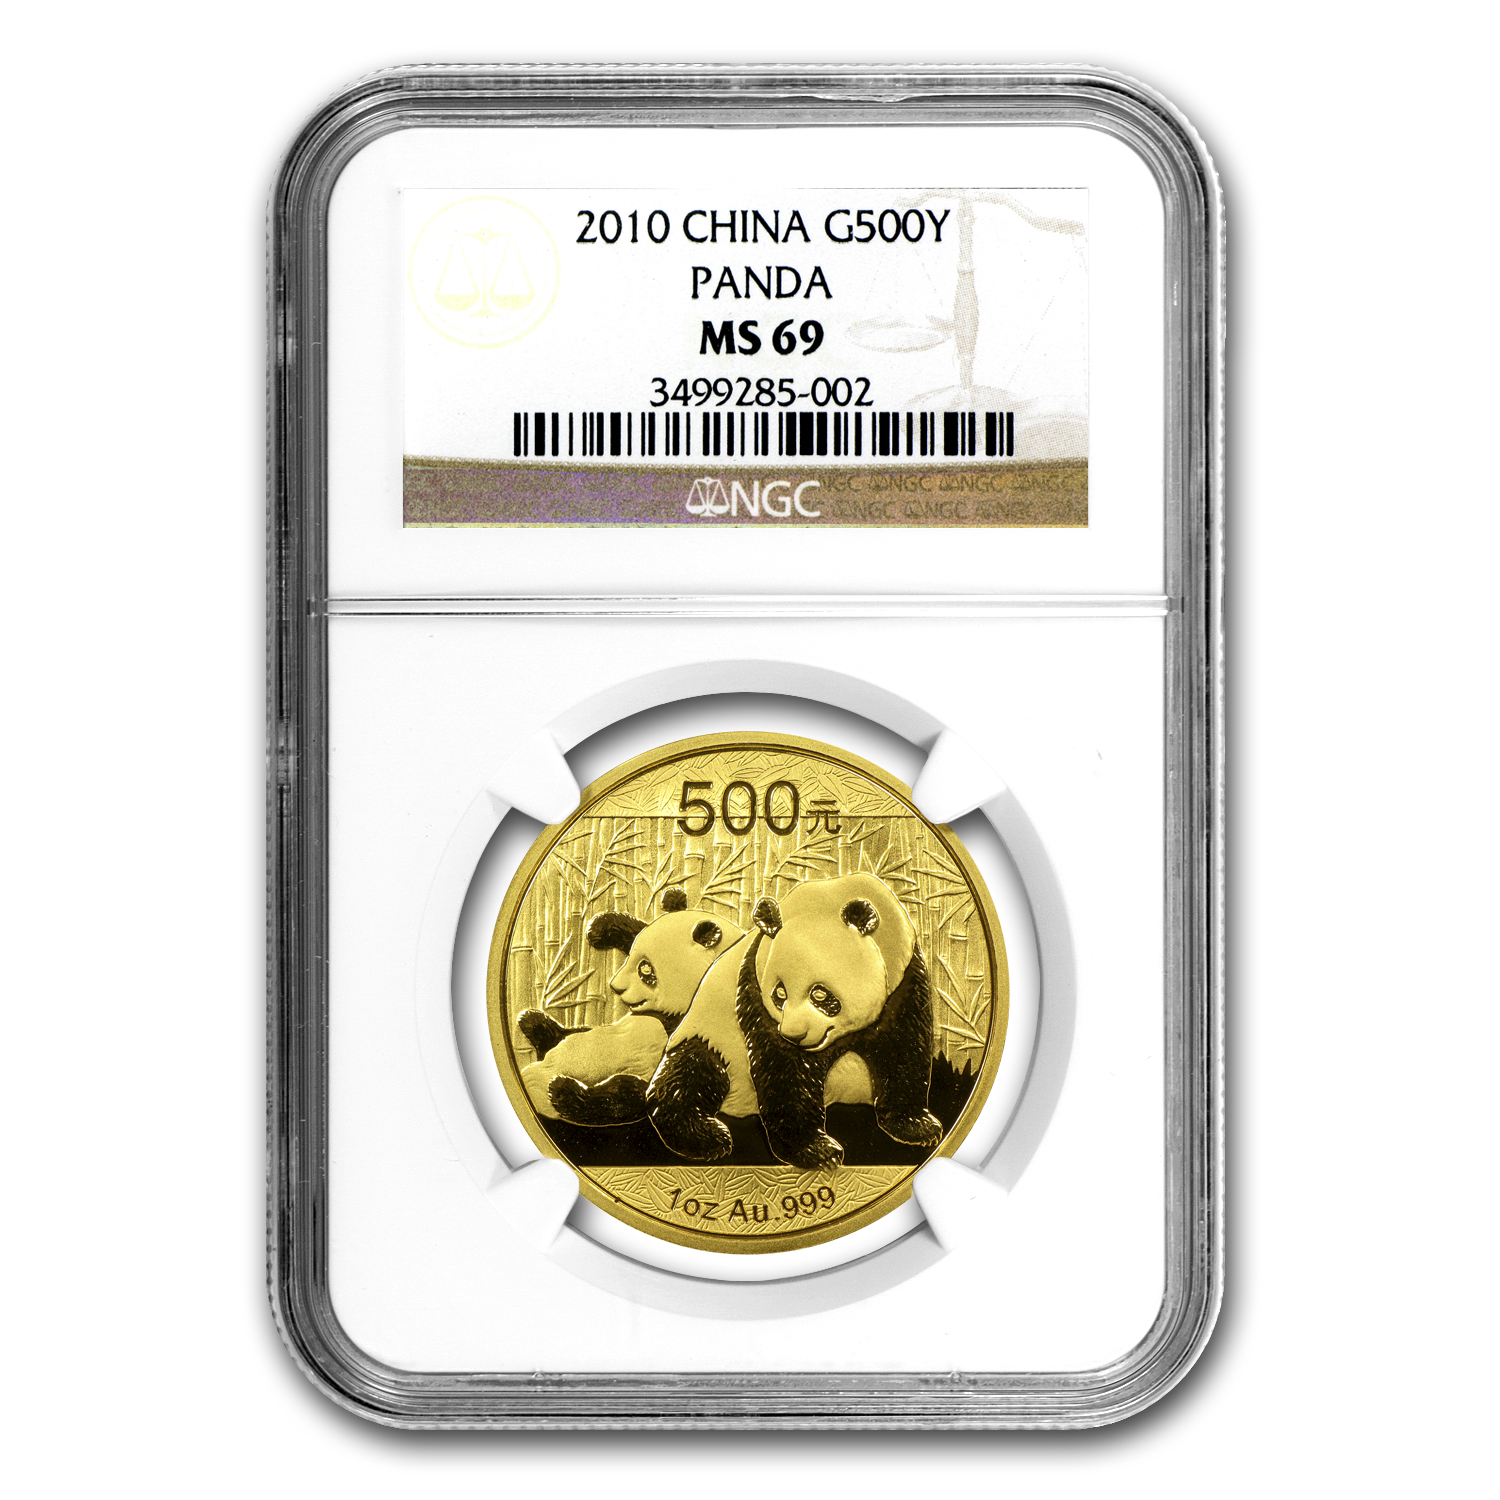 2010 China 1 oz Gold Panda MS-69 NGC